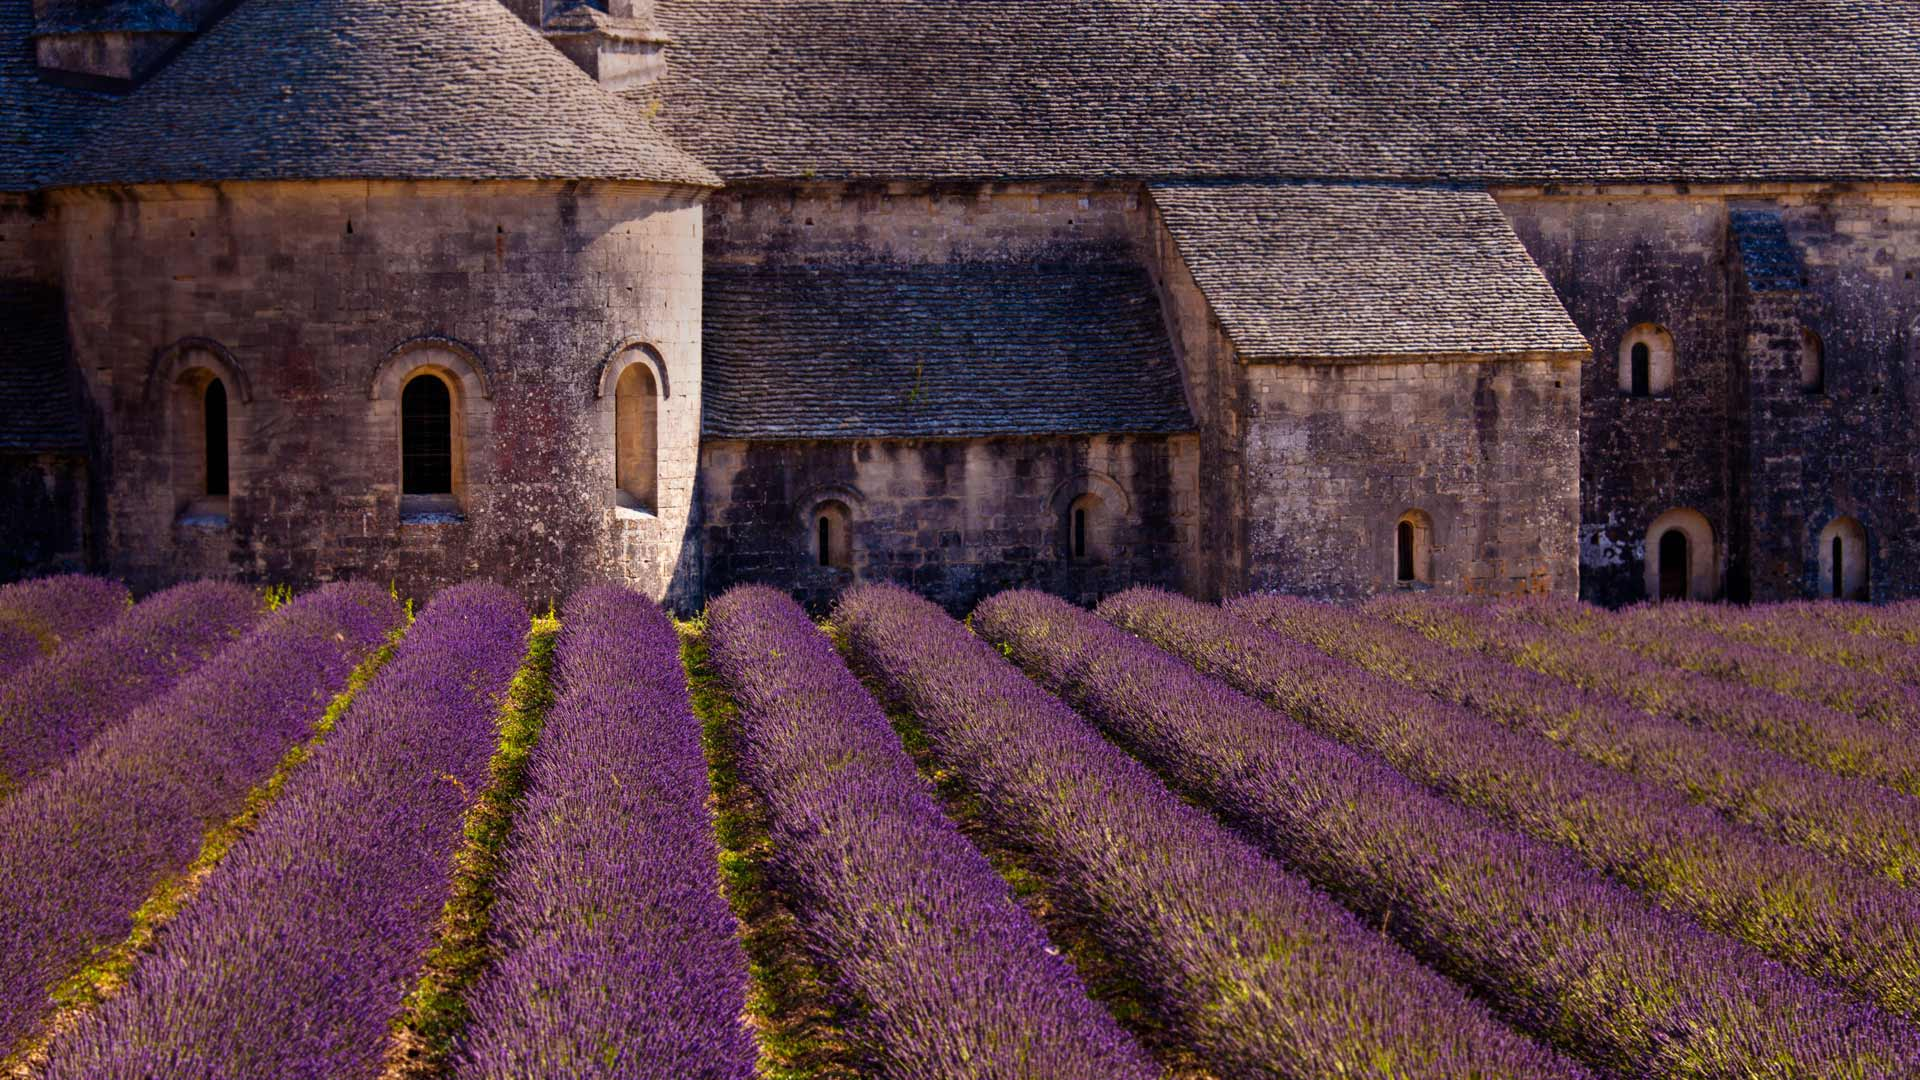 Lavender fields in the Senanque Abbey France, Provence-Alpes-Côte d'Azur (© Carlos Sanchez Pereyra / plainpicture)